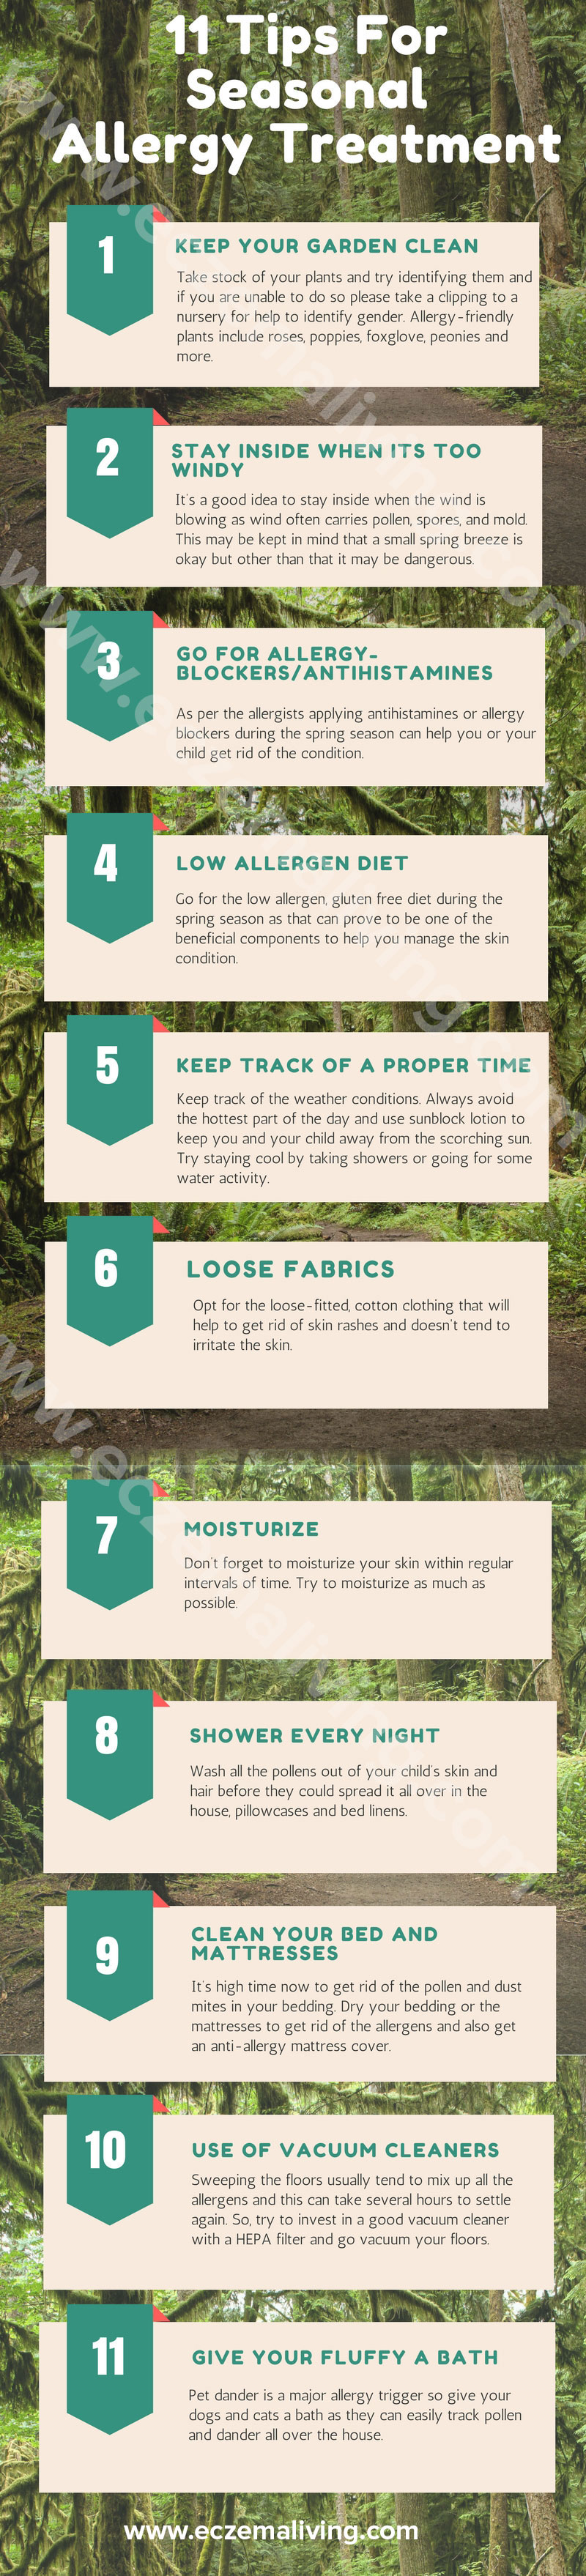 11 Tips for seasonal allergy treatment